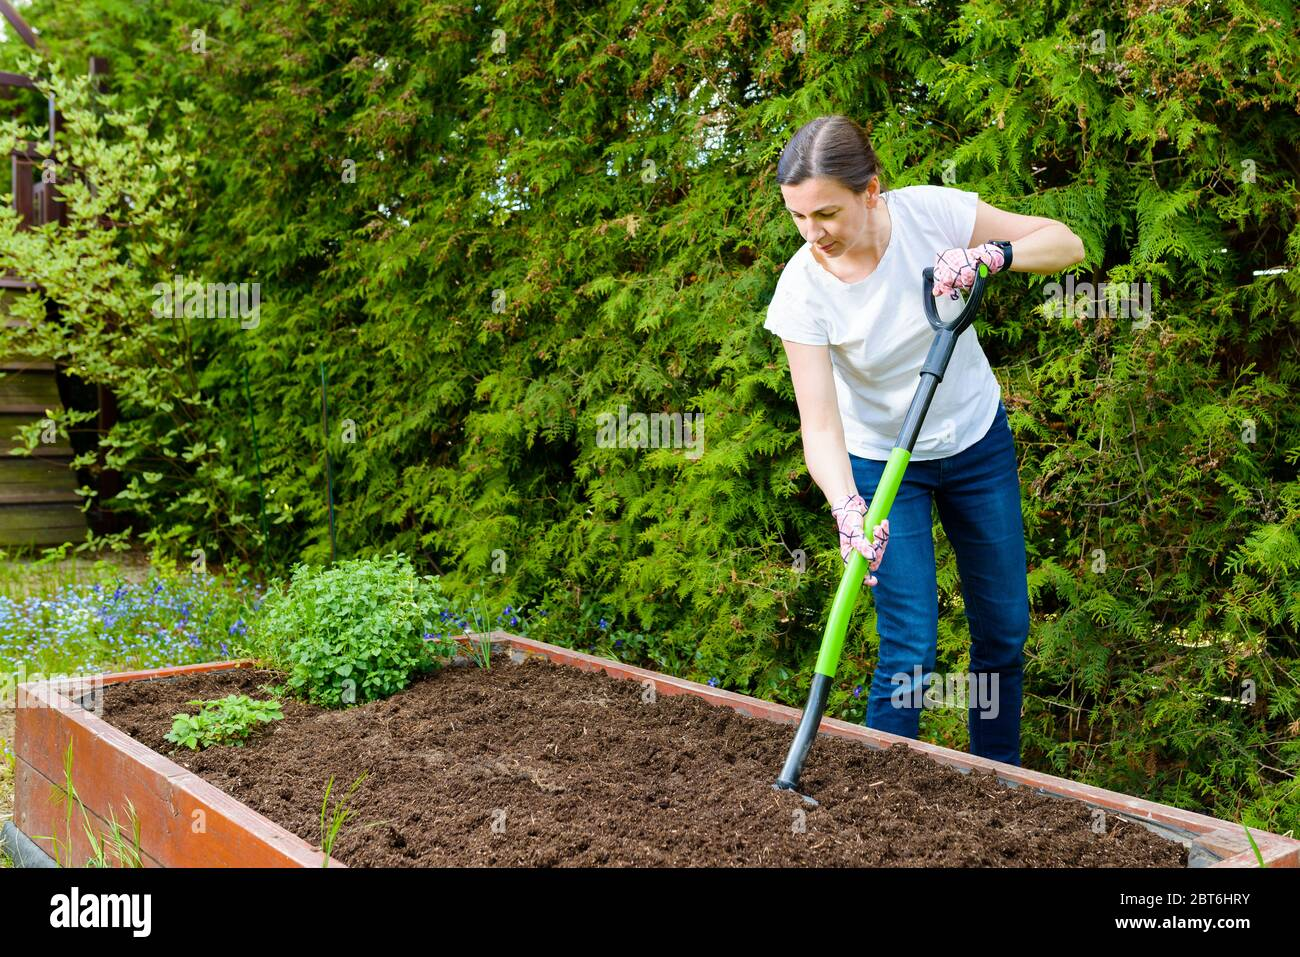 Woman loosening the soil with a pitchfork for growing vegetables and herbs in a wooden crate - a vegetable garden Stock Photo